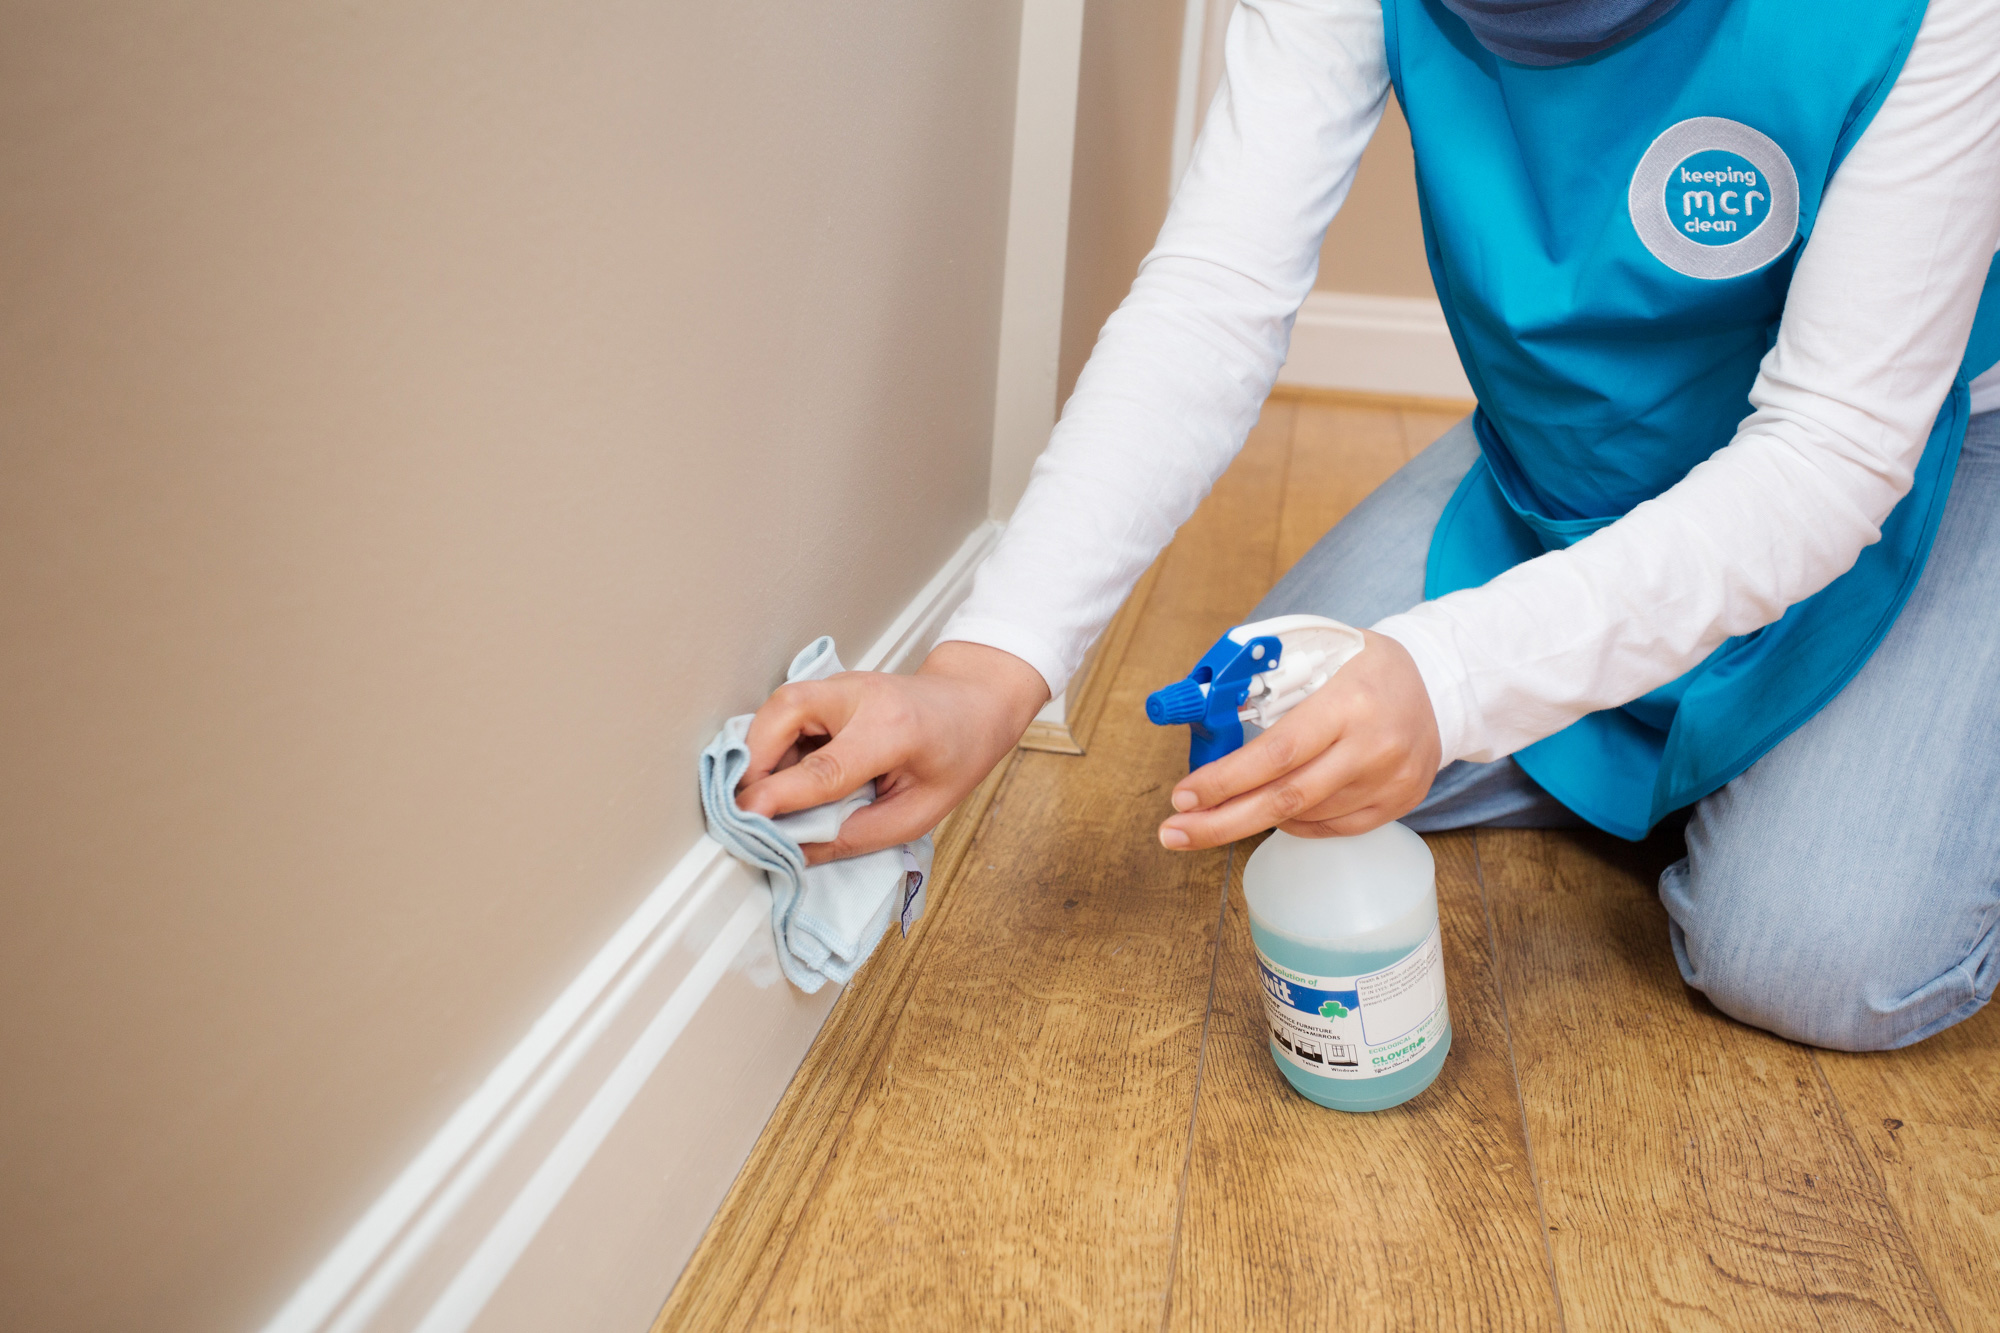 Commercial cleaning services Manchester, Altrincham, Sale, Stockport, Chorlton, Didsbury.